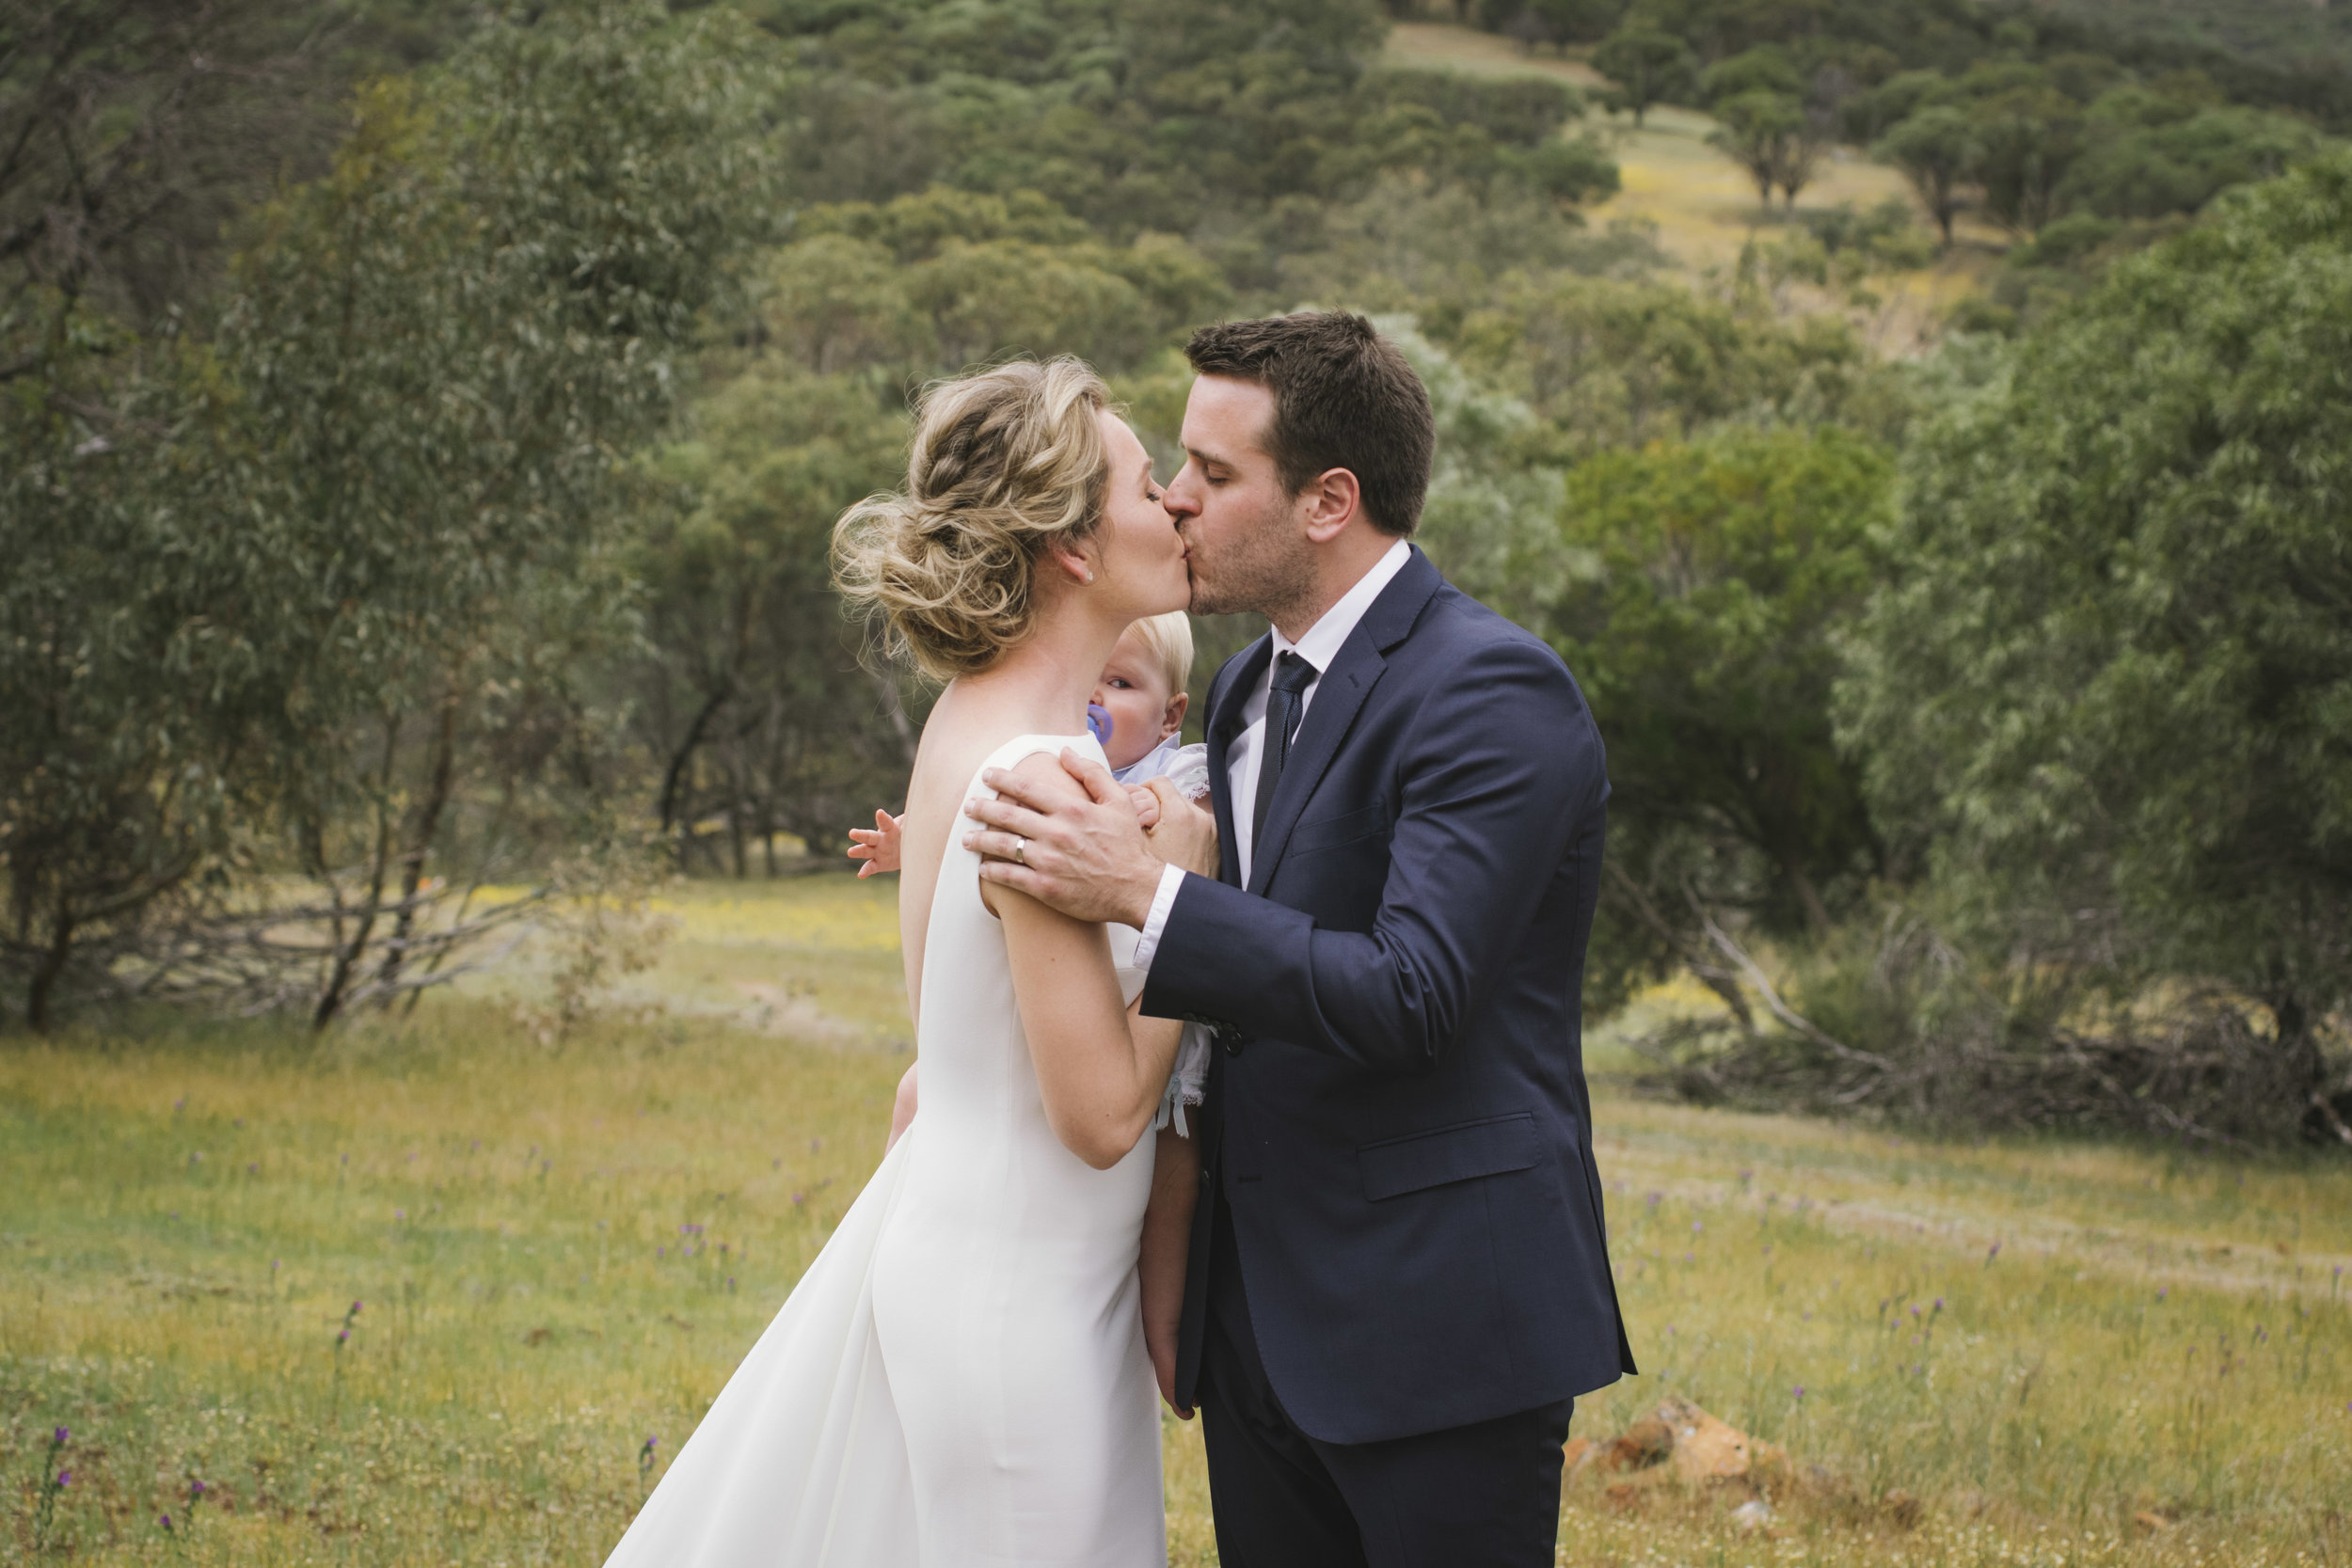 Avon Valley Toodyay Rustic Rural Festival Wedding  (35).jpg